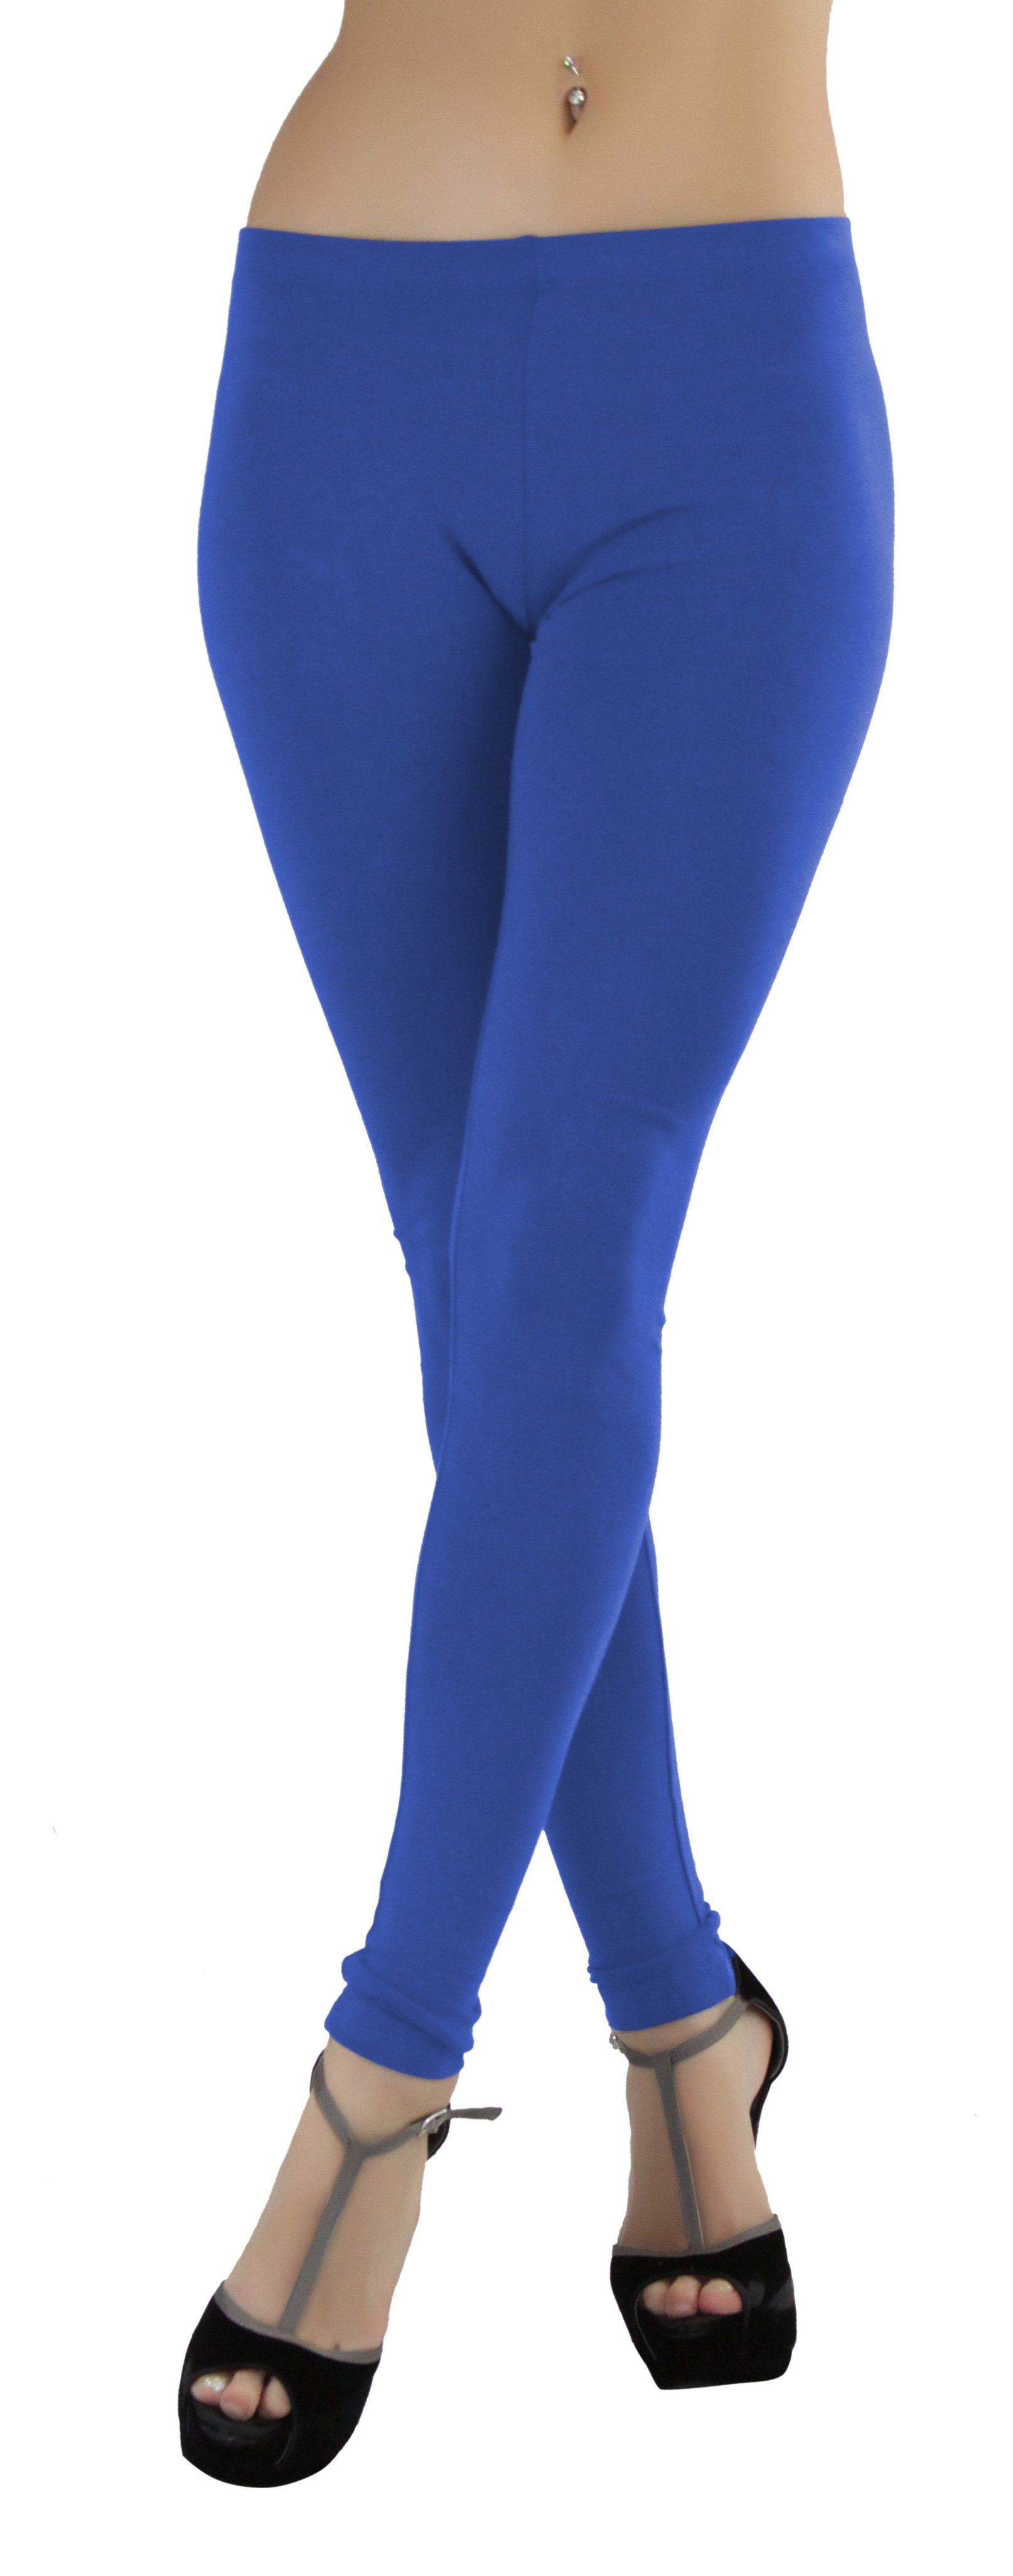 Women's Shapewear Leggings